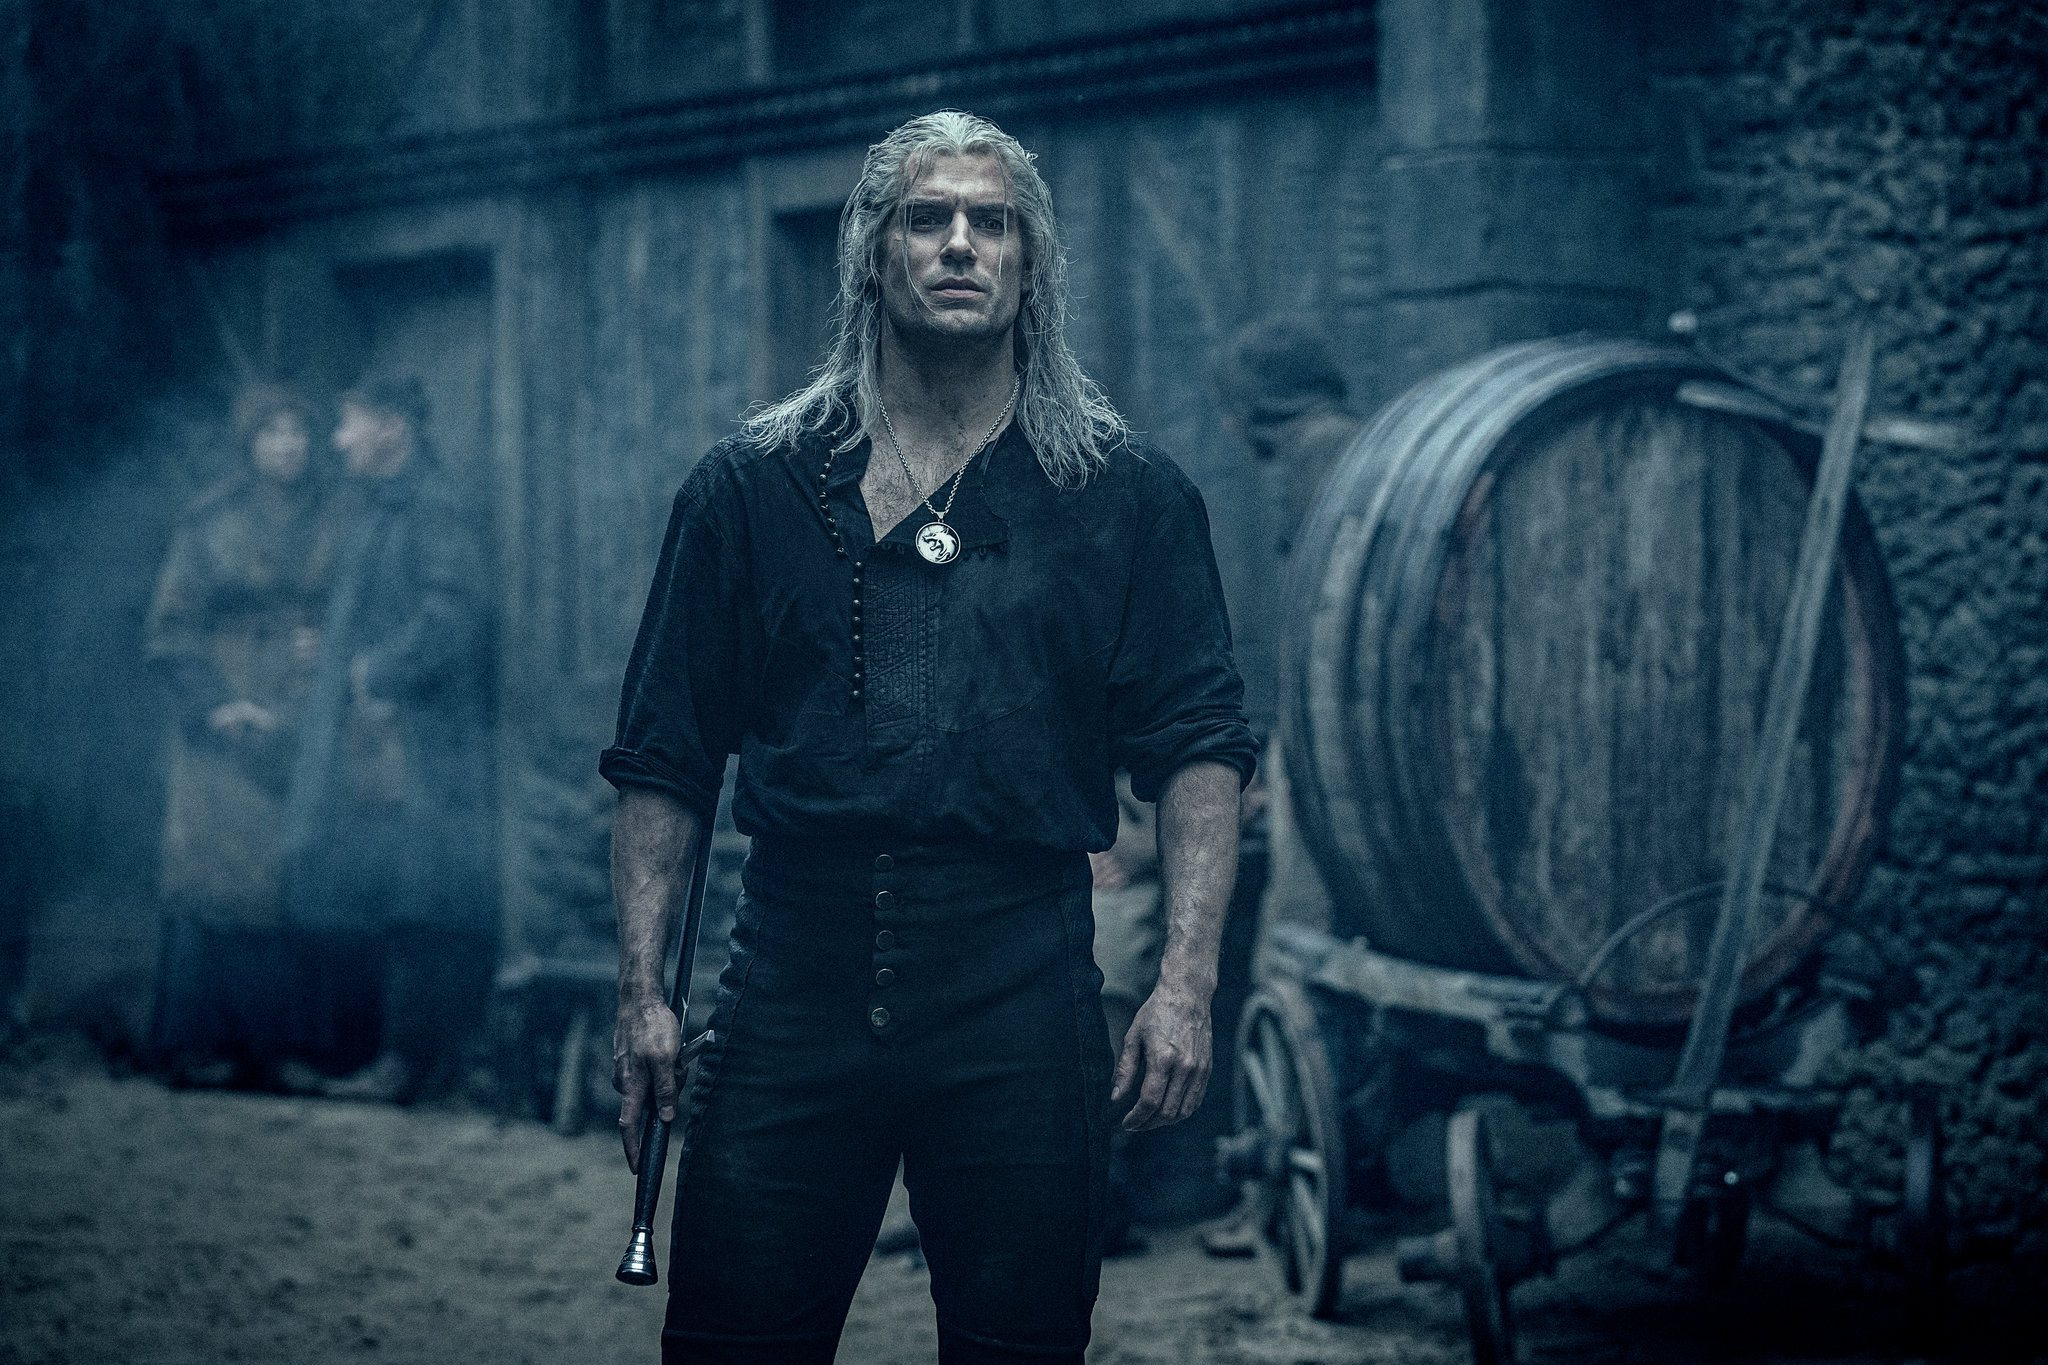 Netflix Returns Back With The Witcher Season 2! Check Out The Official Teaser!